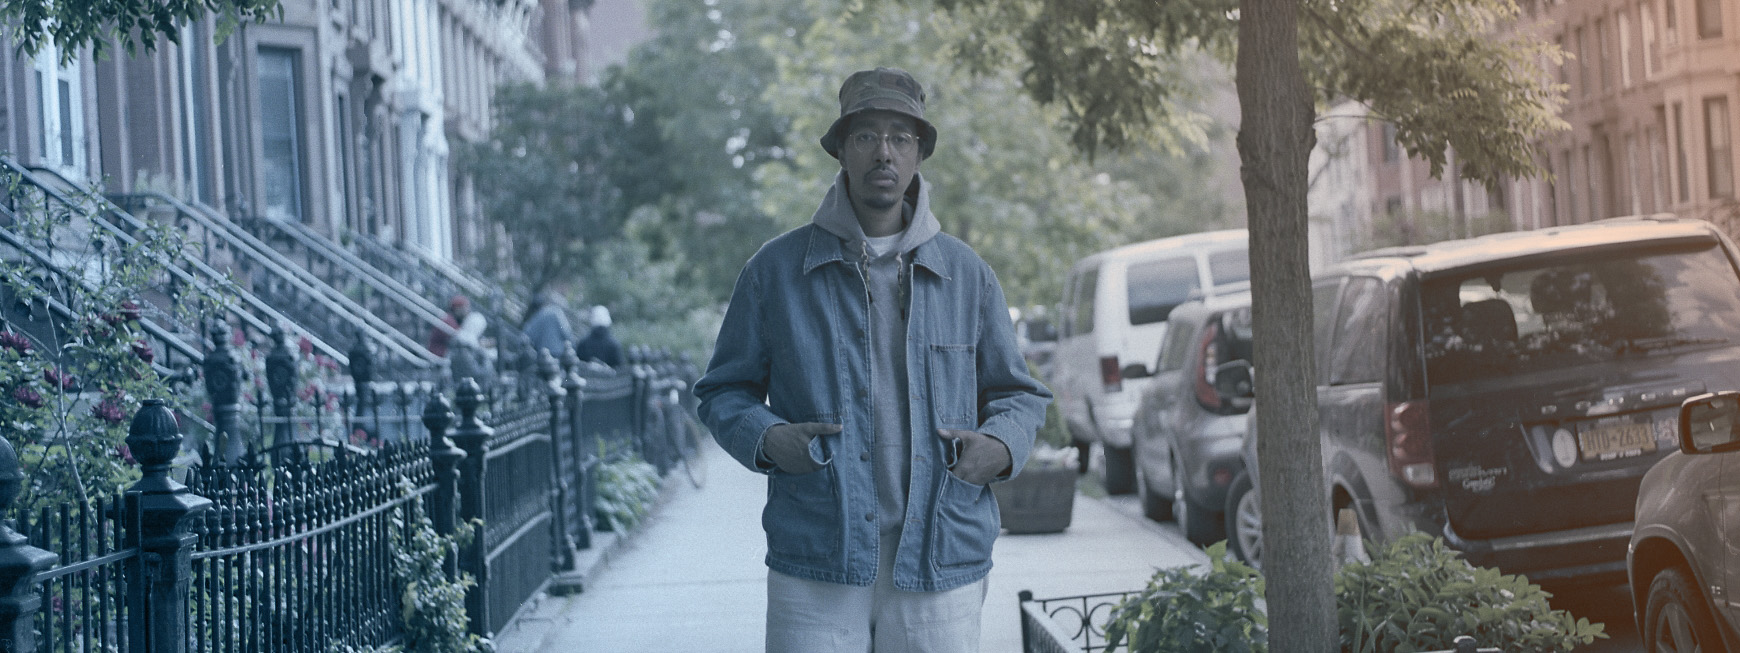 Out Today by The Orchard: Oddisee, Christian Sands, & The Aces